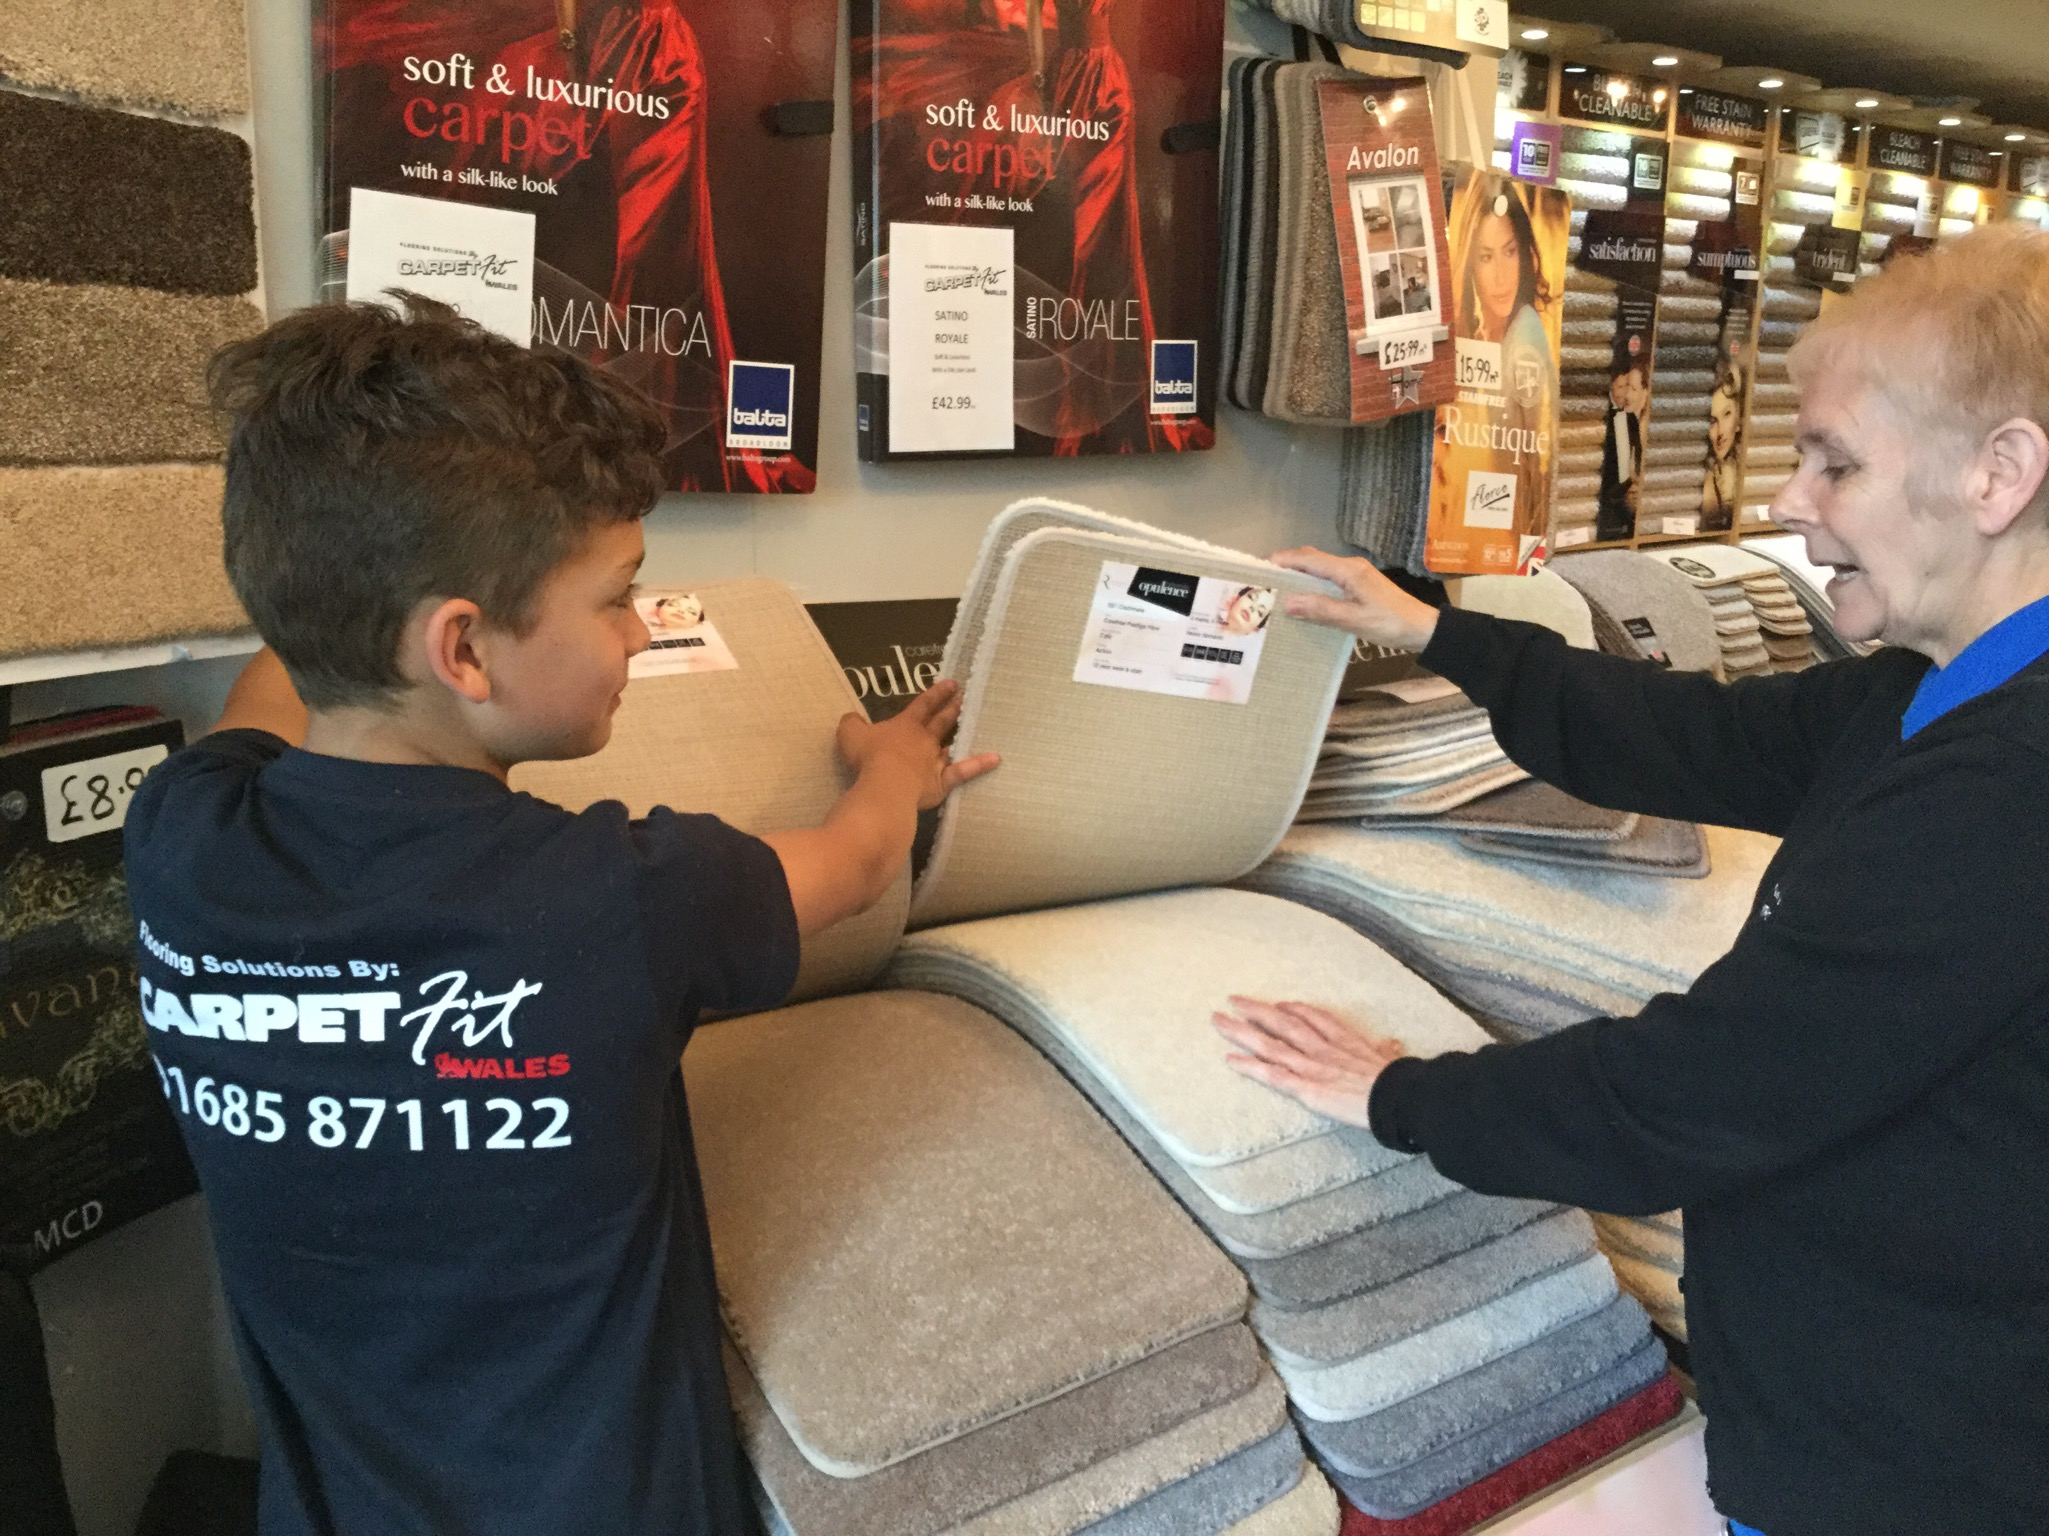 Carpet-Fit-Wales-Kids-Aberdare-South-Wales-Flooring-Carpets-LVT-Vinyl-Cleaning-Professional-Samples-Customer-Service show room